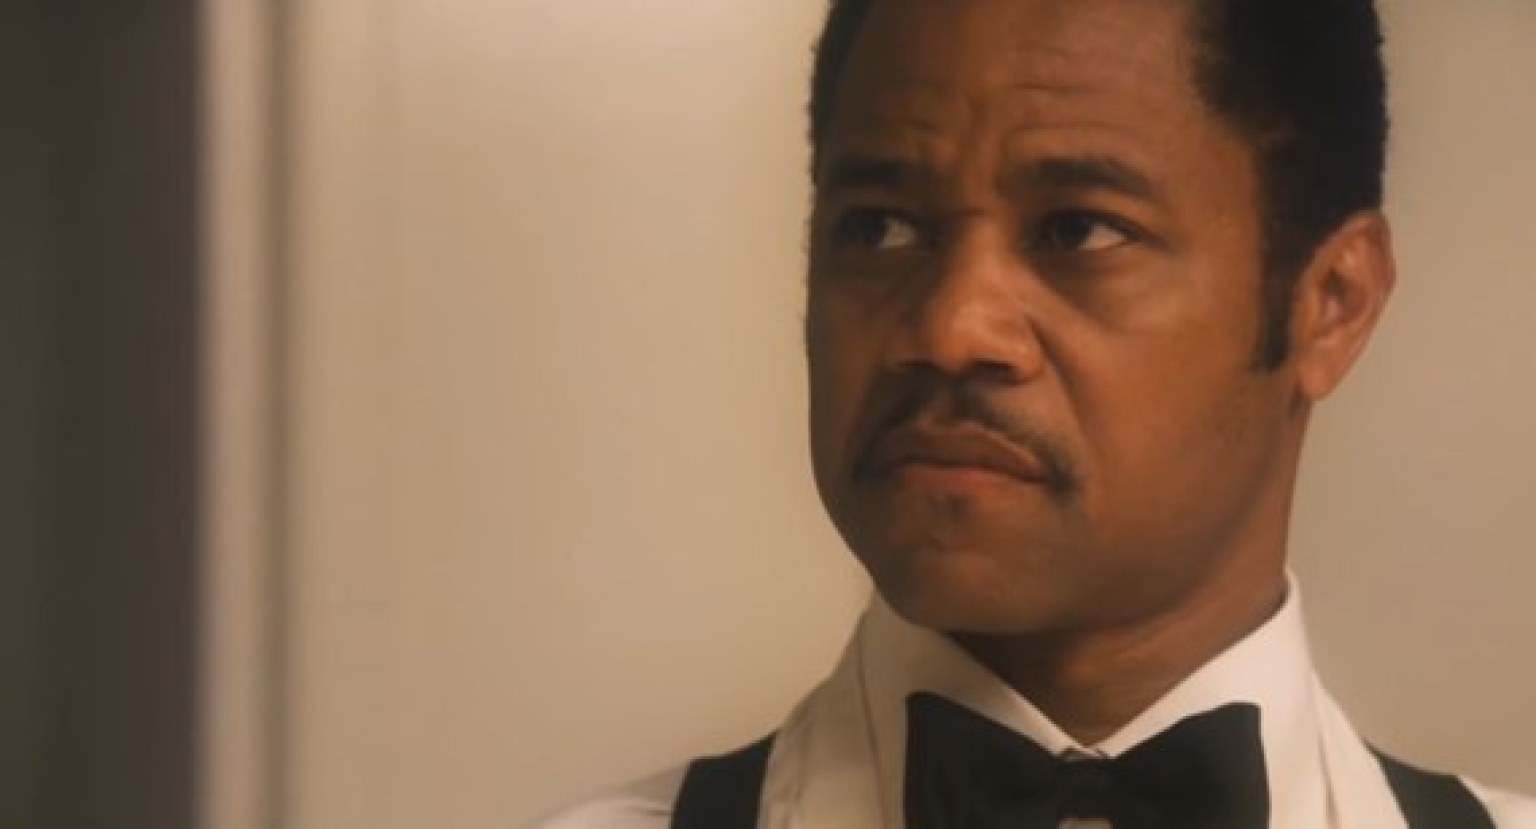 Cuba Gooding Jr., 'Lee Daniels' The Butler' Star, On His Complicated Relationship With Hollywood | HuffPost